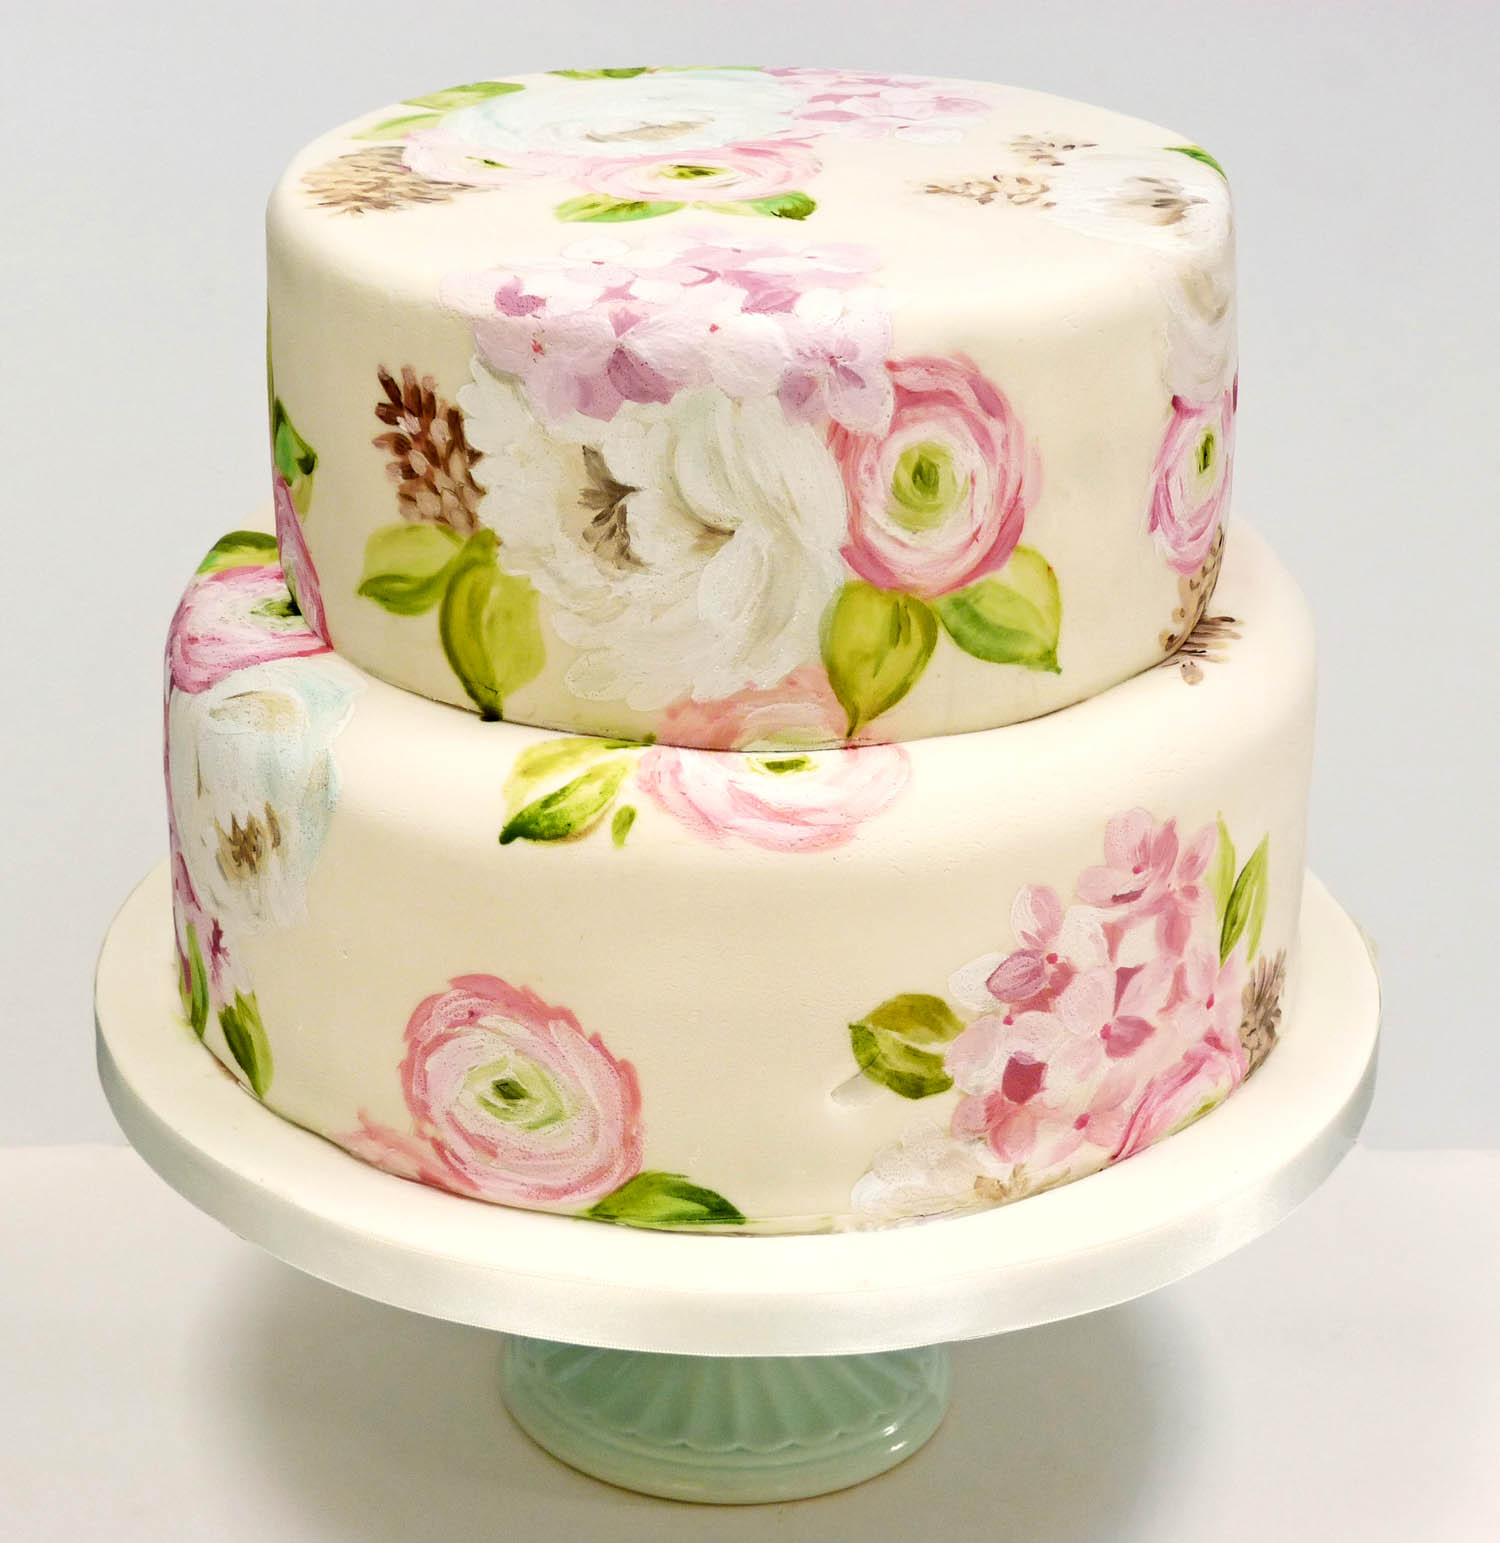 Nevie_pie_cakes_Floral-wedding-cake-Herfodshire